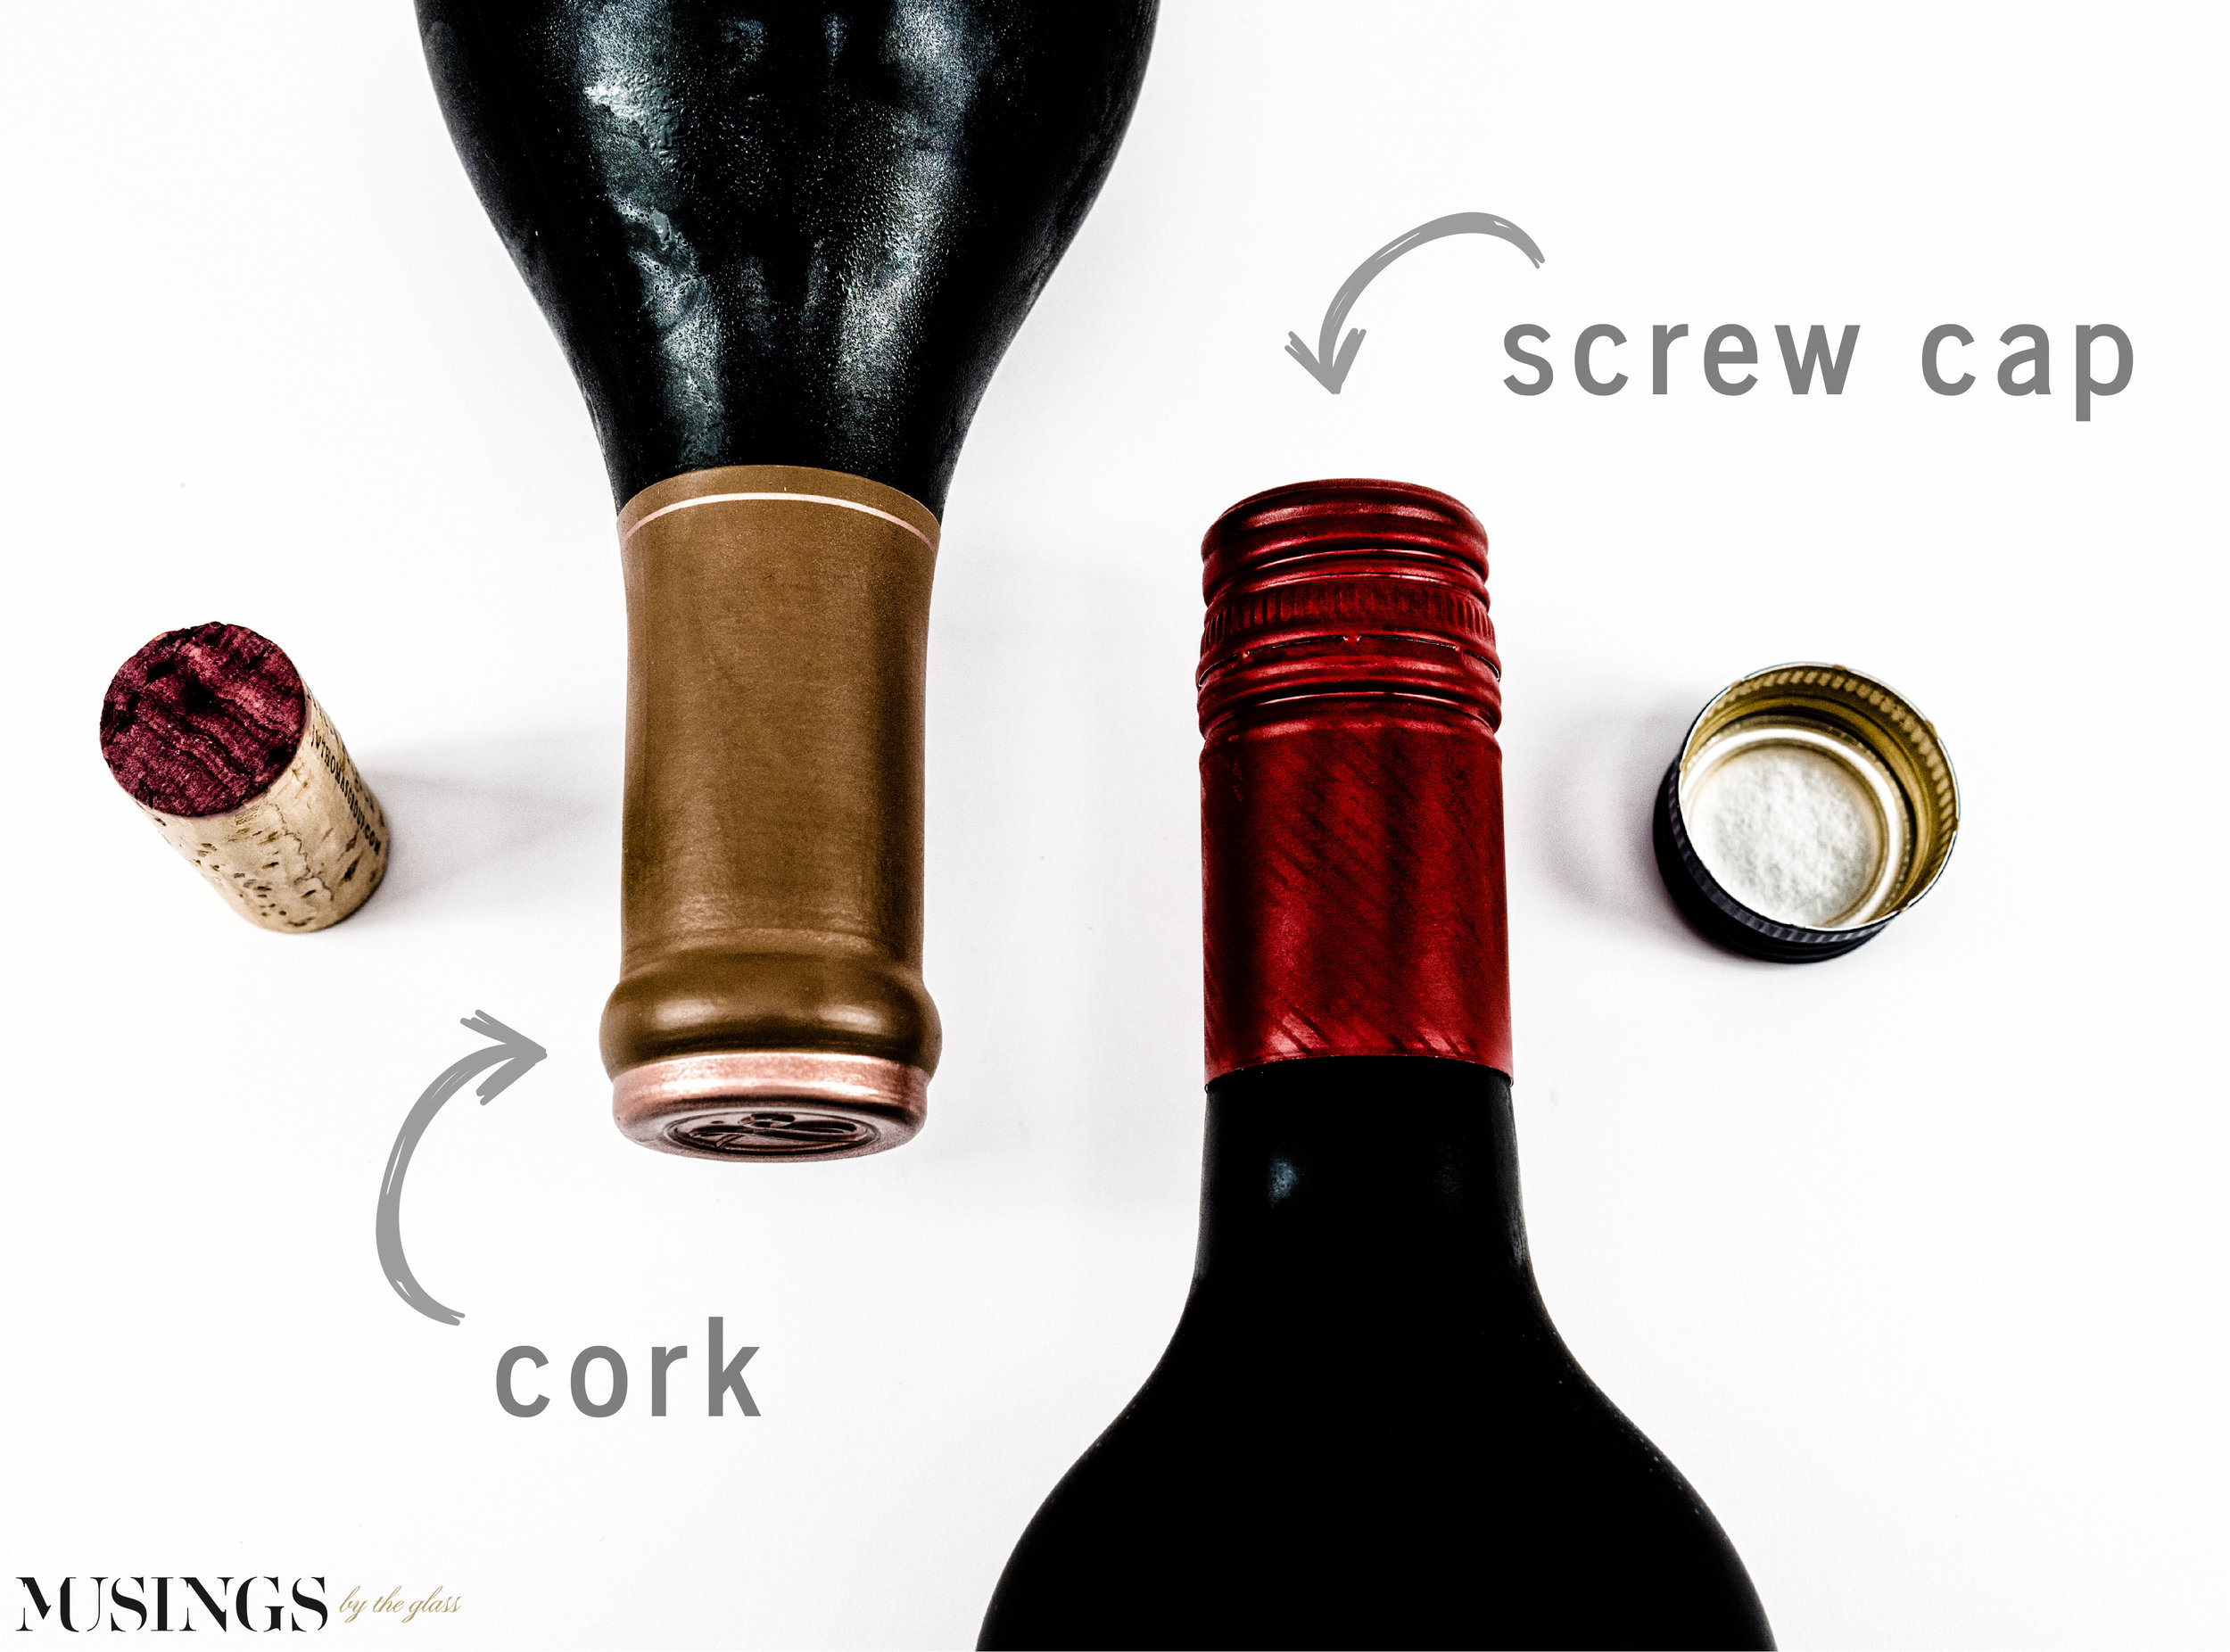 Musings by the Glass - Cork vs Screw Cap - Bottles and Cork and Screw Cap